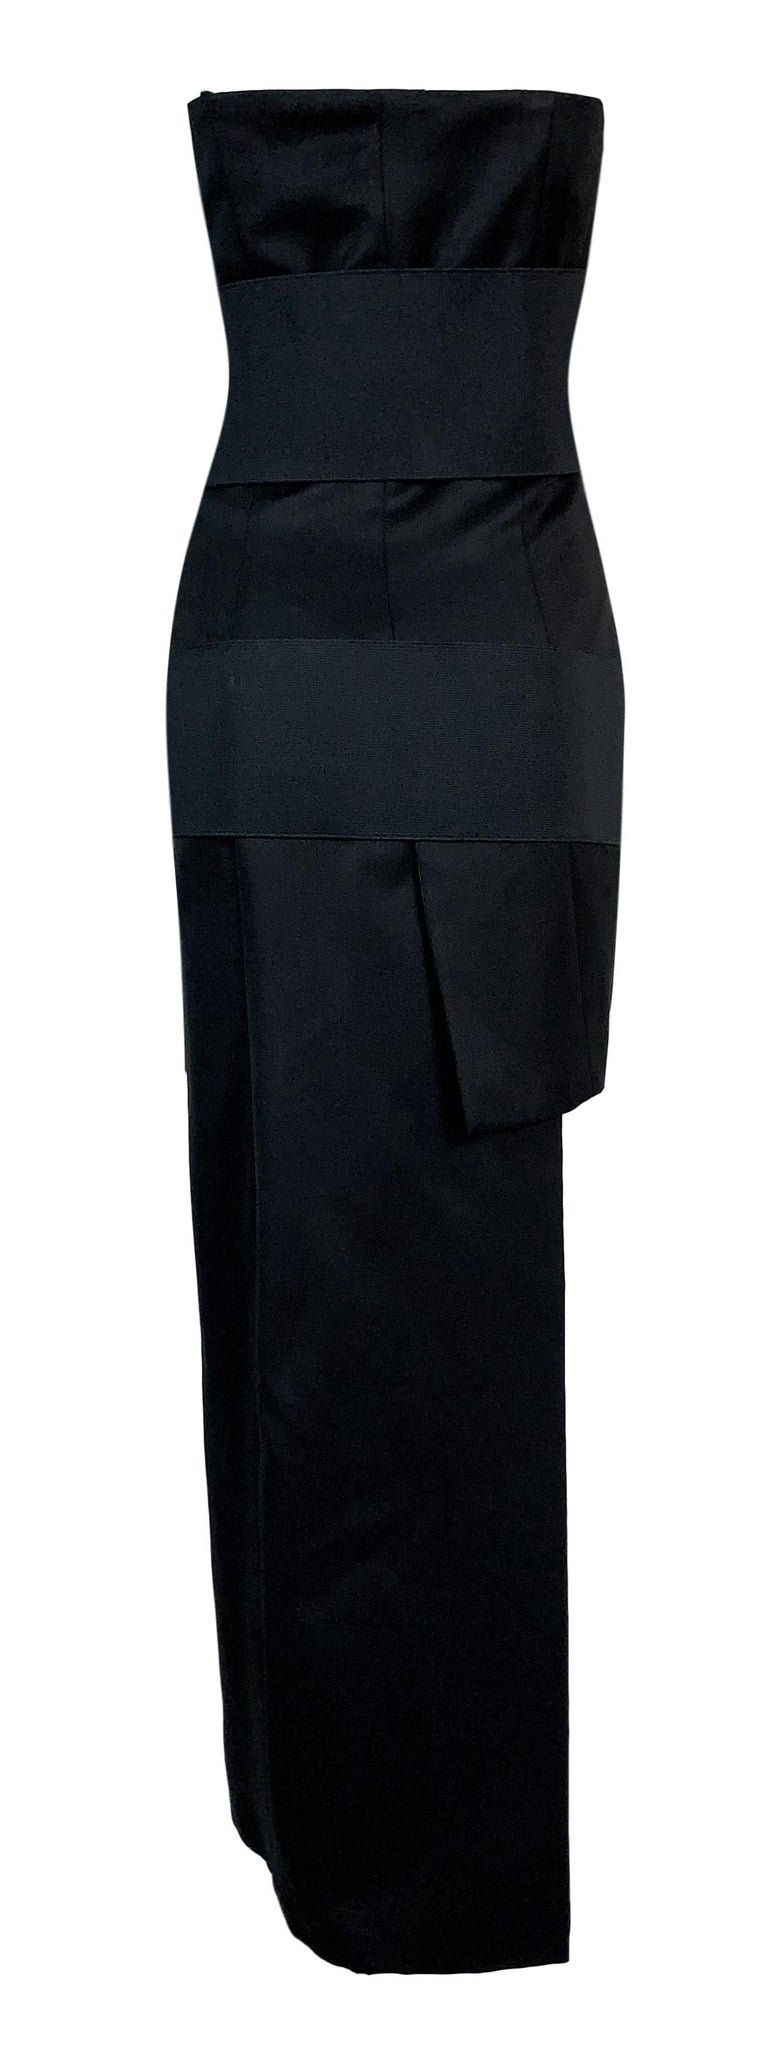 S/S 2001 Yves Saint Laurent by Tom Ford Black Bandage Wrap Hi-Low Mini Dress 36 In Good Condition For Sale In Yukon, OK